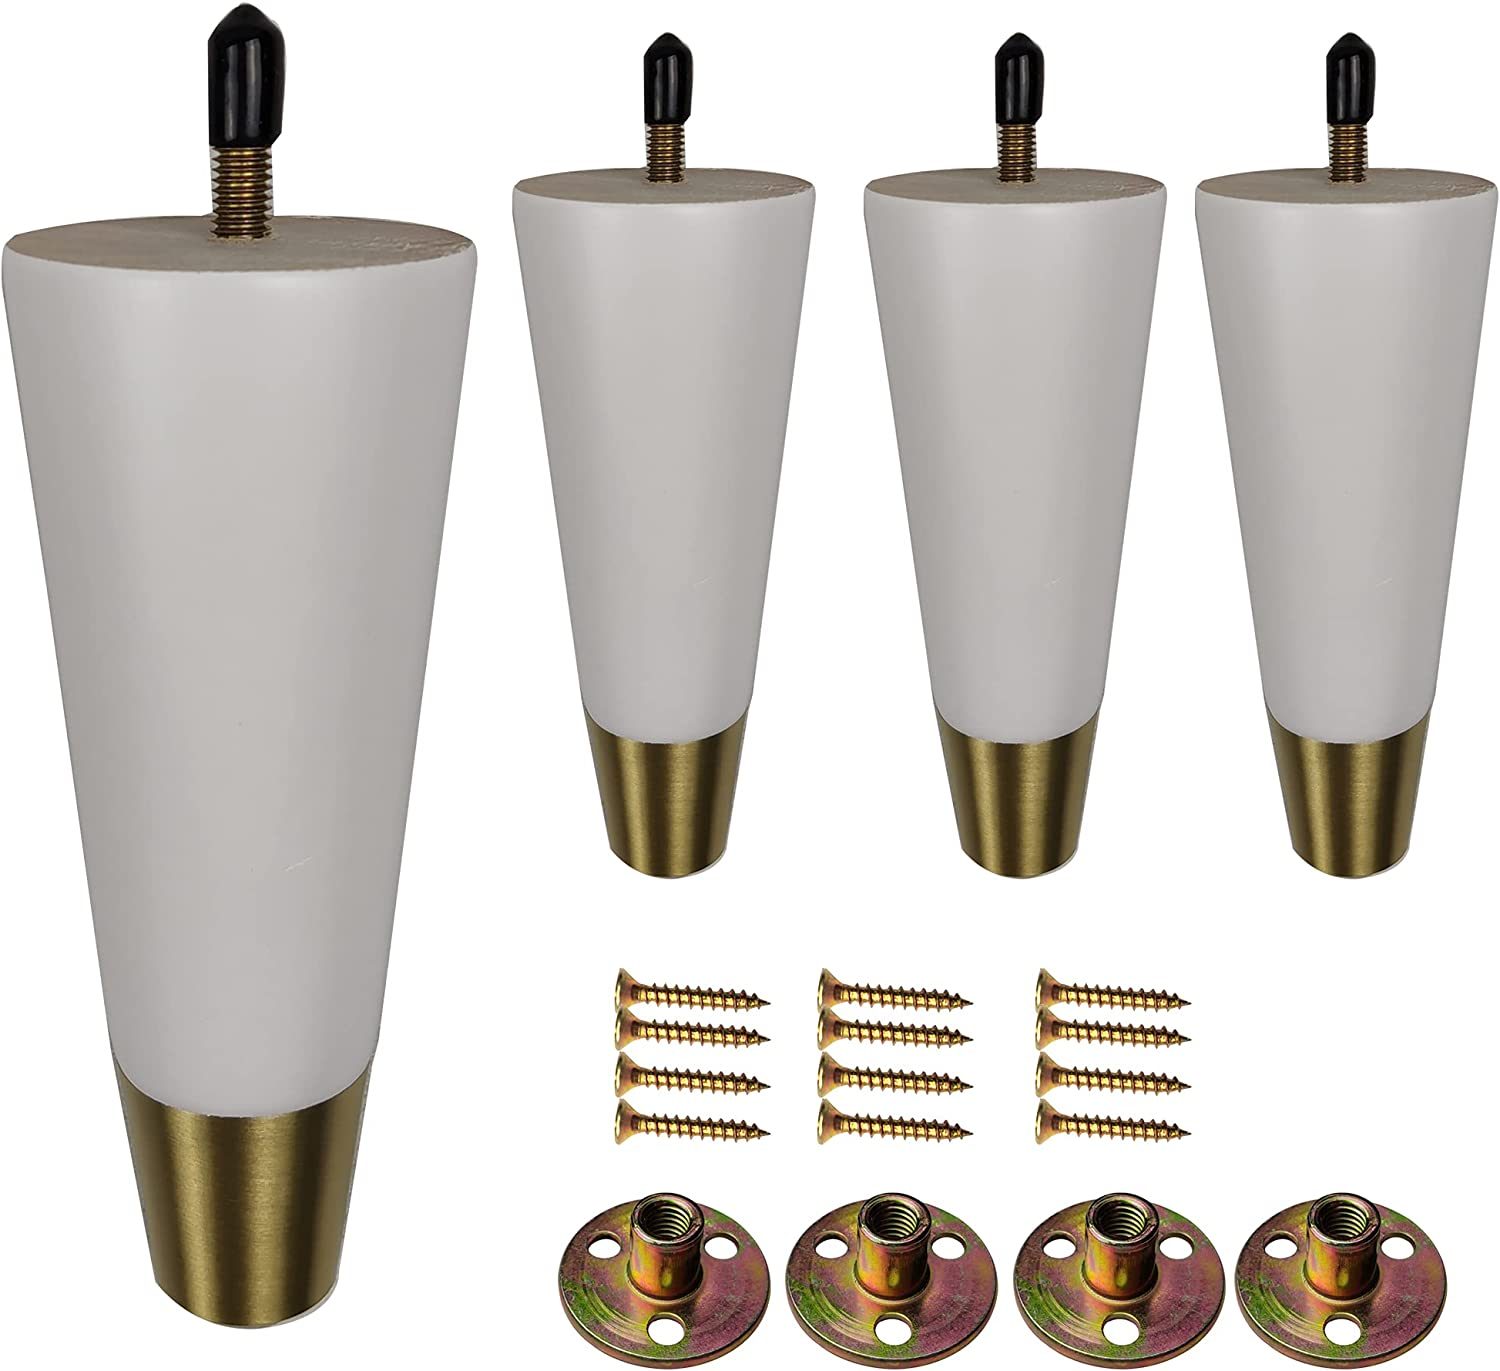 Furniture Legs 6 inch Couch Legs Set of 4 White Sofa Legs Solid Wood Round Tapered Gold Furniture feet Replacement Legs for Sofa Couch Armchair canbinet Dresser with Screw Install (6 inch, White)